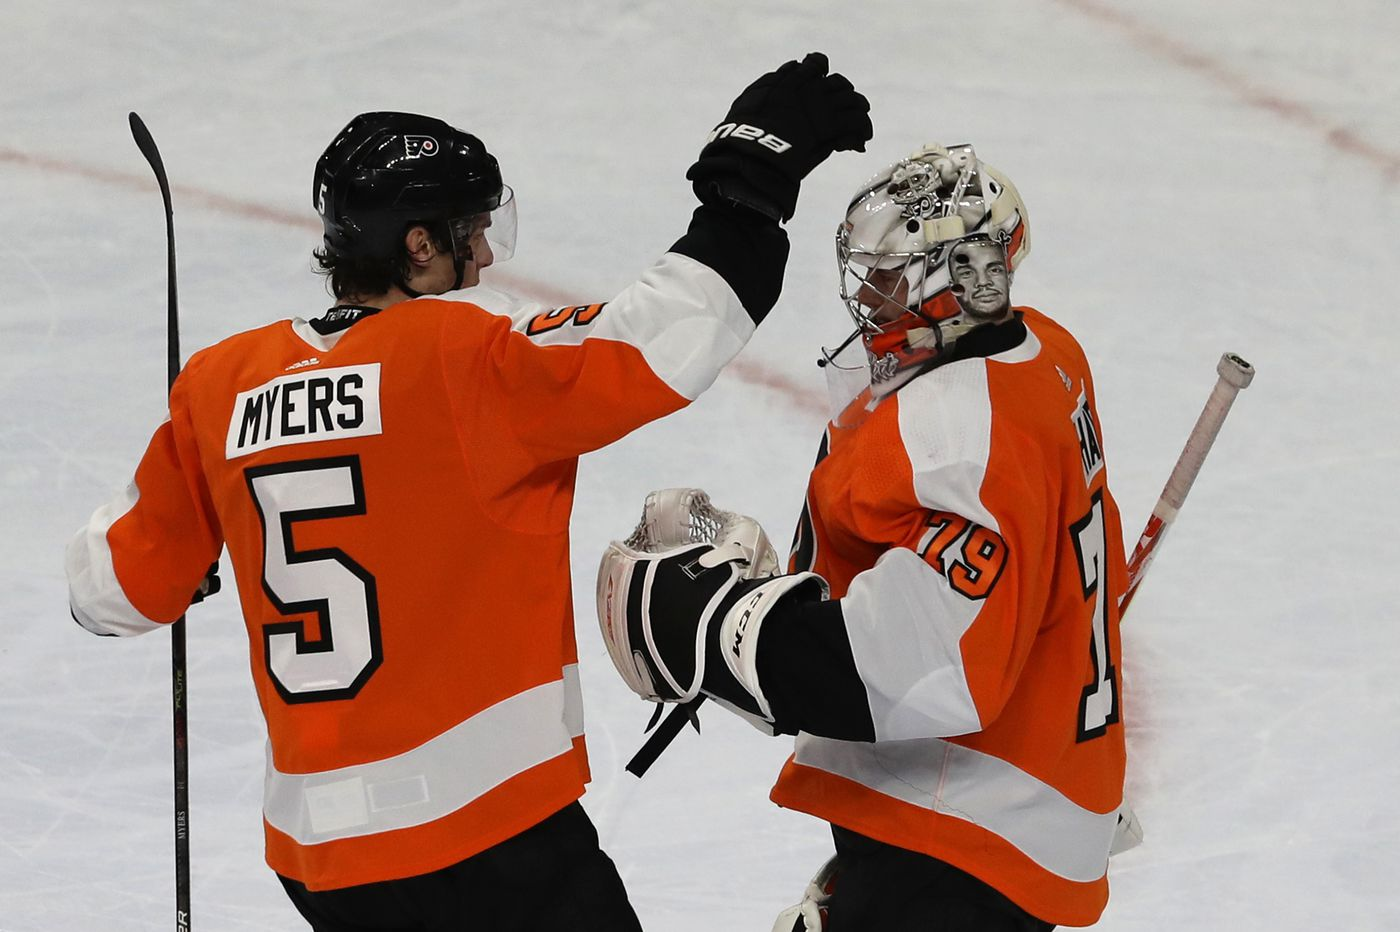 Flyers cruise past Carolina Hurricanes, 4-1, to win 8th straight and move into virtual tie for first place